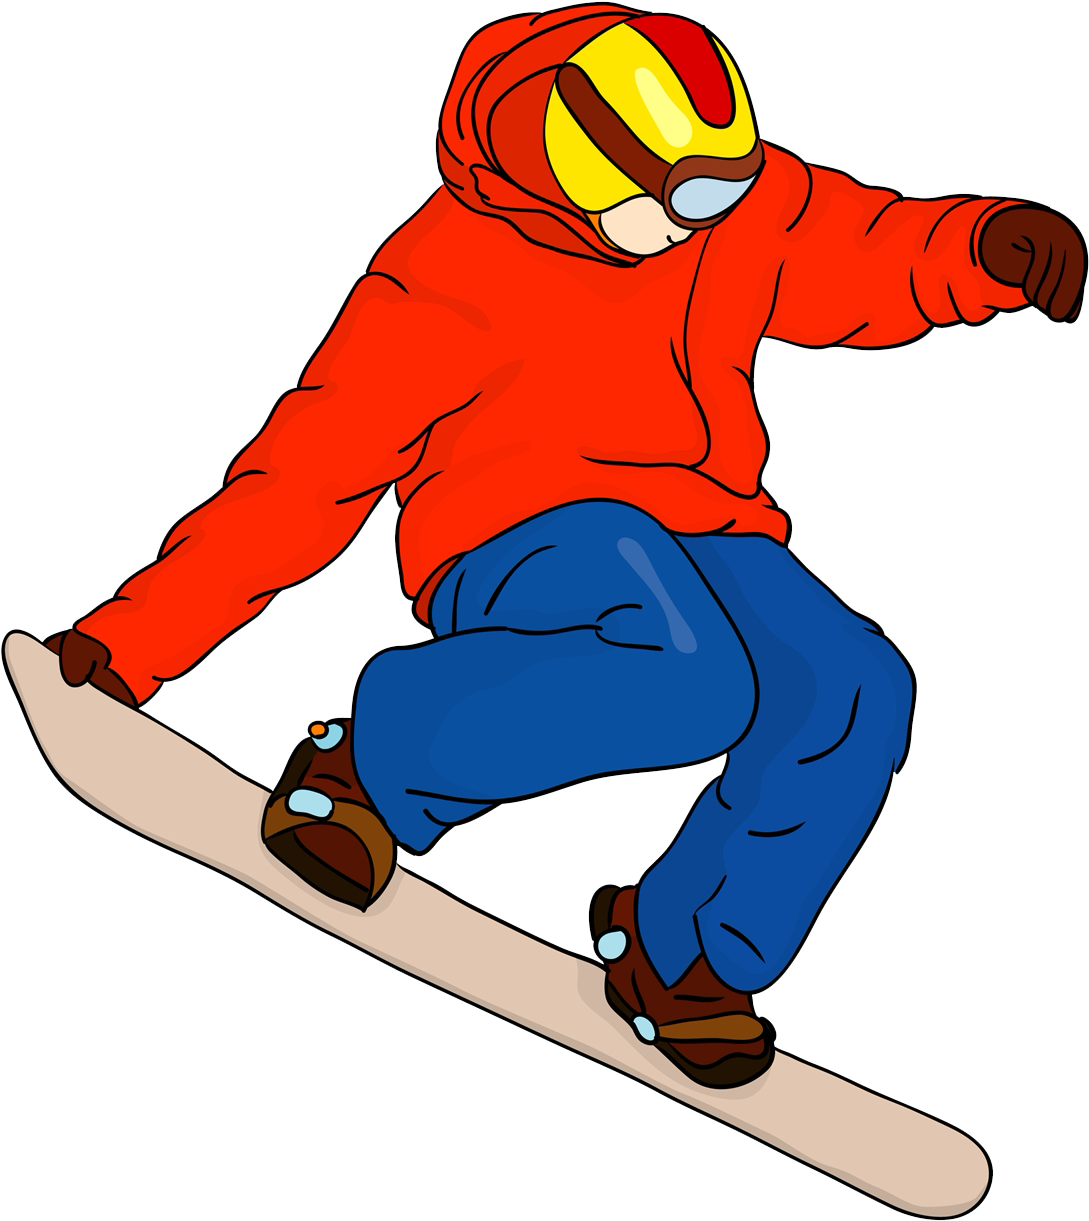 Snowboarder Drawing Cartoon Cartoon Snowboarder Clipart Full Size Clipart 716829 Pinclipart